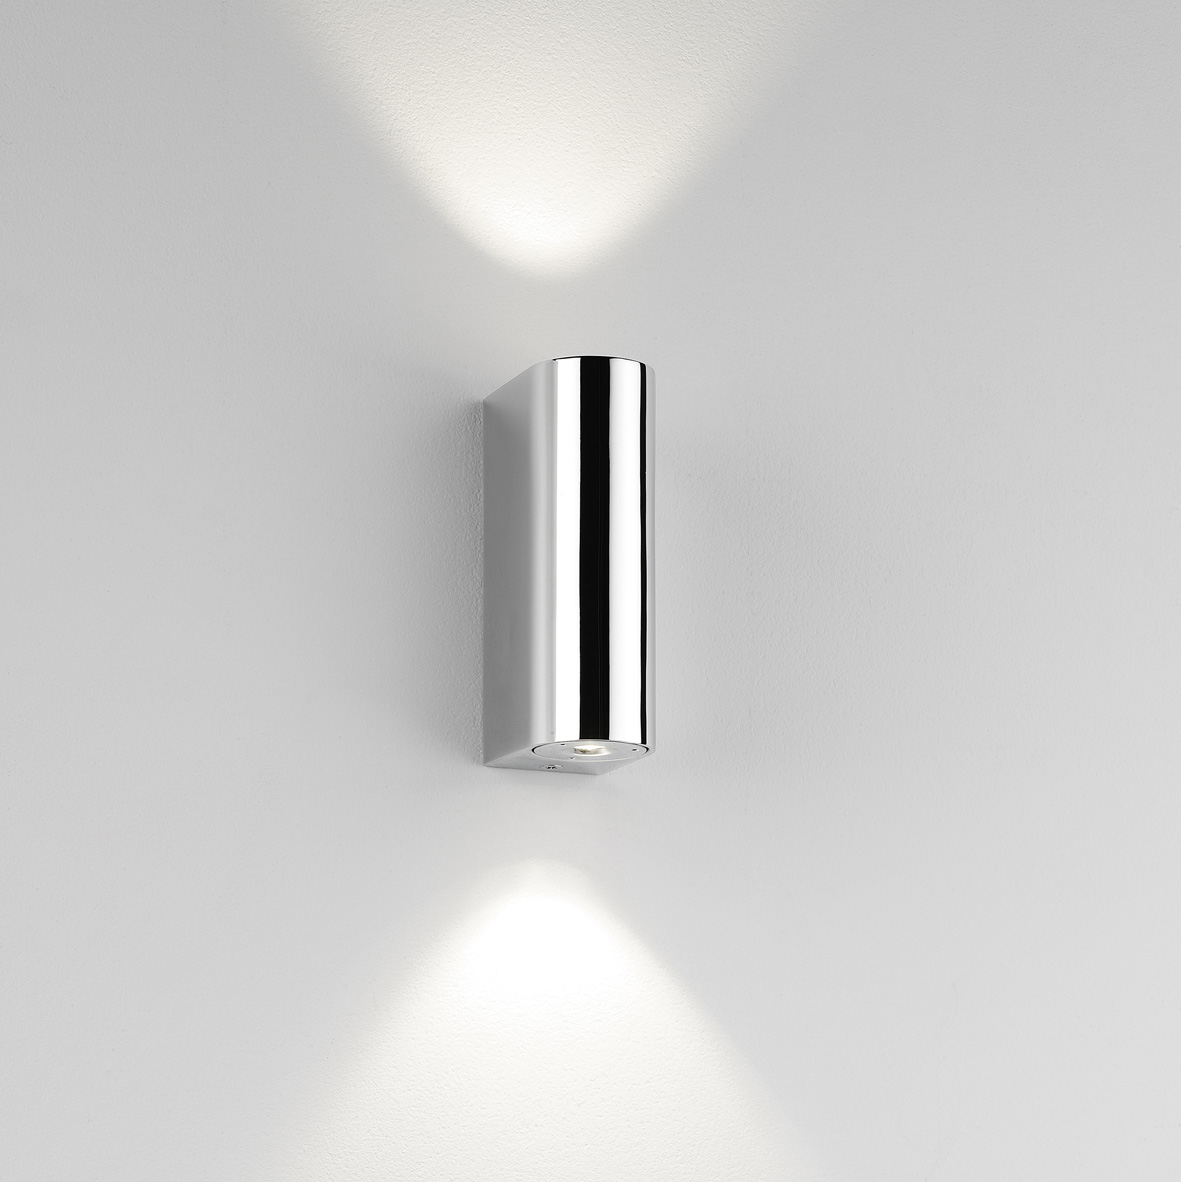 ASTRO Alba 0828 bathroom LED wall light 2 X 1W IP44 3000K warmwhite Luxeon